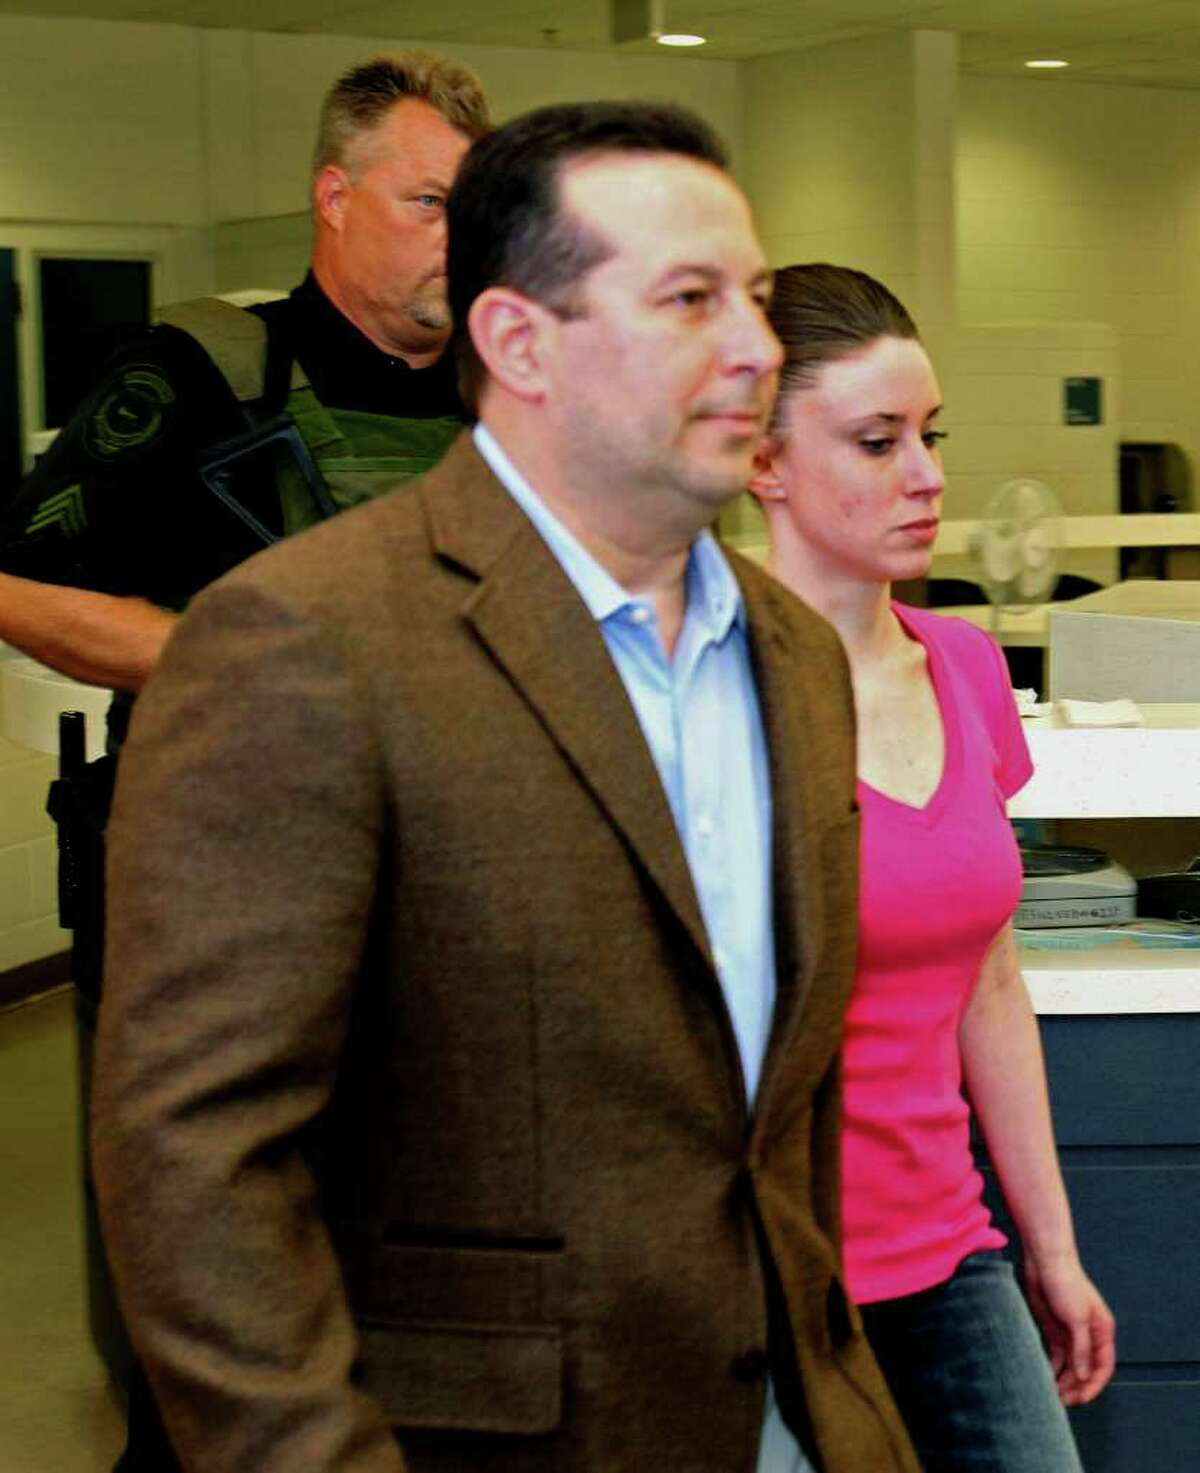 Casey Anthony, front right, walks out of the Orange County Jail with her attorney Jose Baez, left, during her release in Orlando, Fla., Sunday, July 17, 2011. Anthony was acquitted last week of murder in the death of her daughter, Caylee.